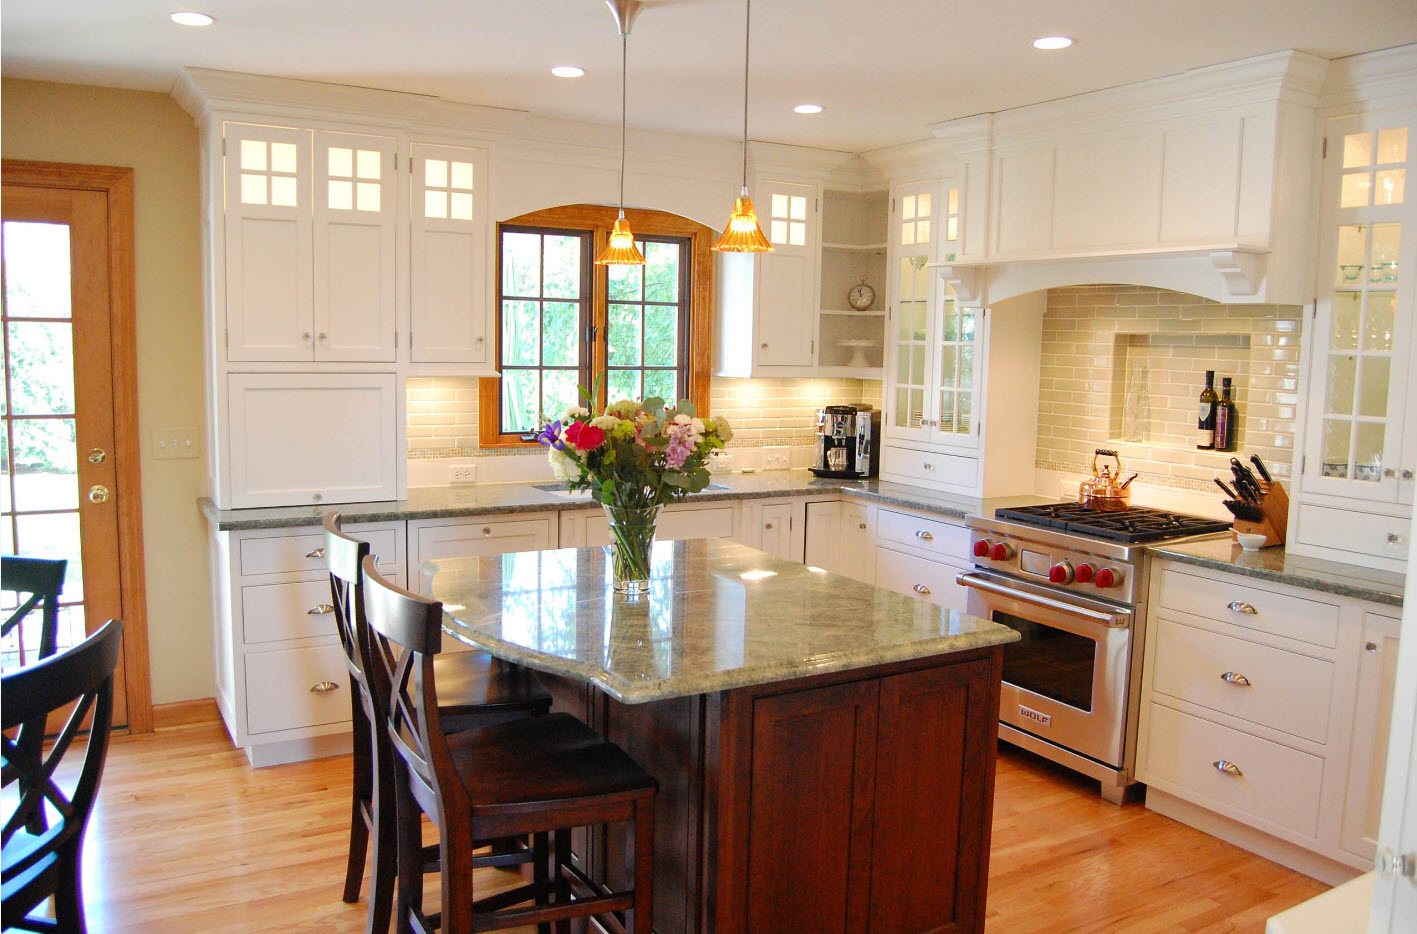 Angular Kitchen Layout Design Ideas 2017. Flowers on the island revive the classic atmosphere